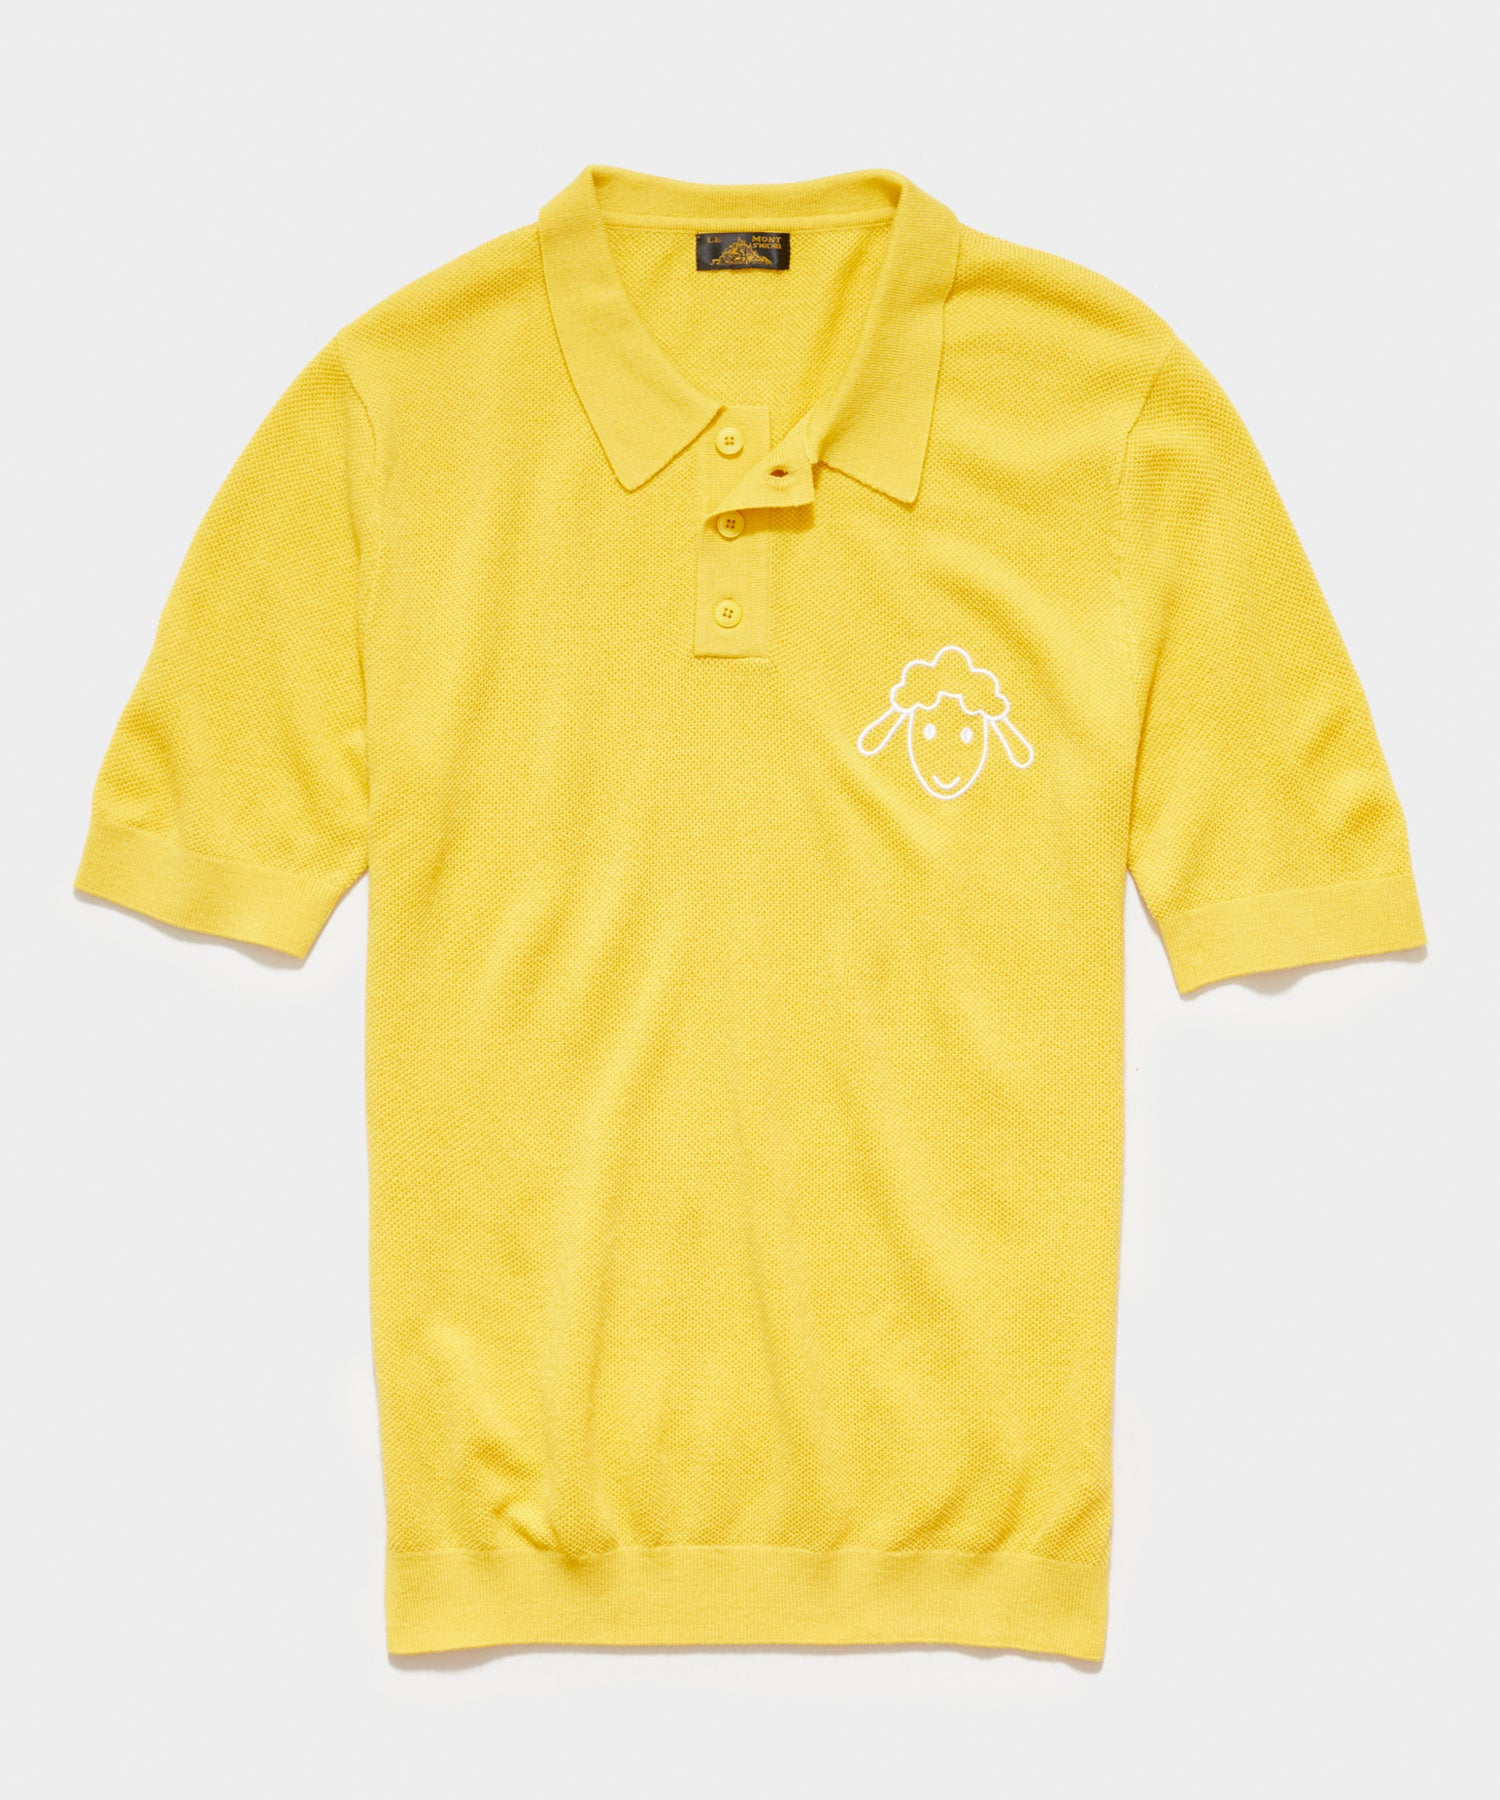 Le Mont St Michel Piqué Lambs Embroidery Sweater Polo in Yellow